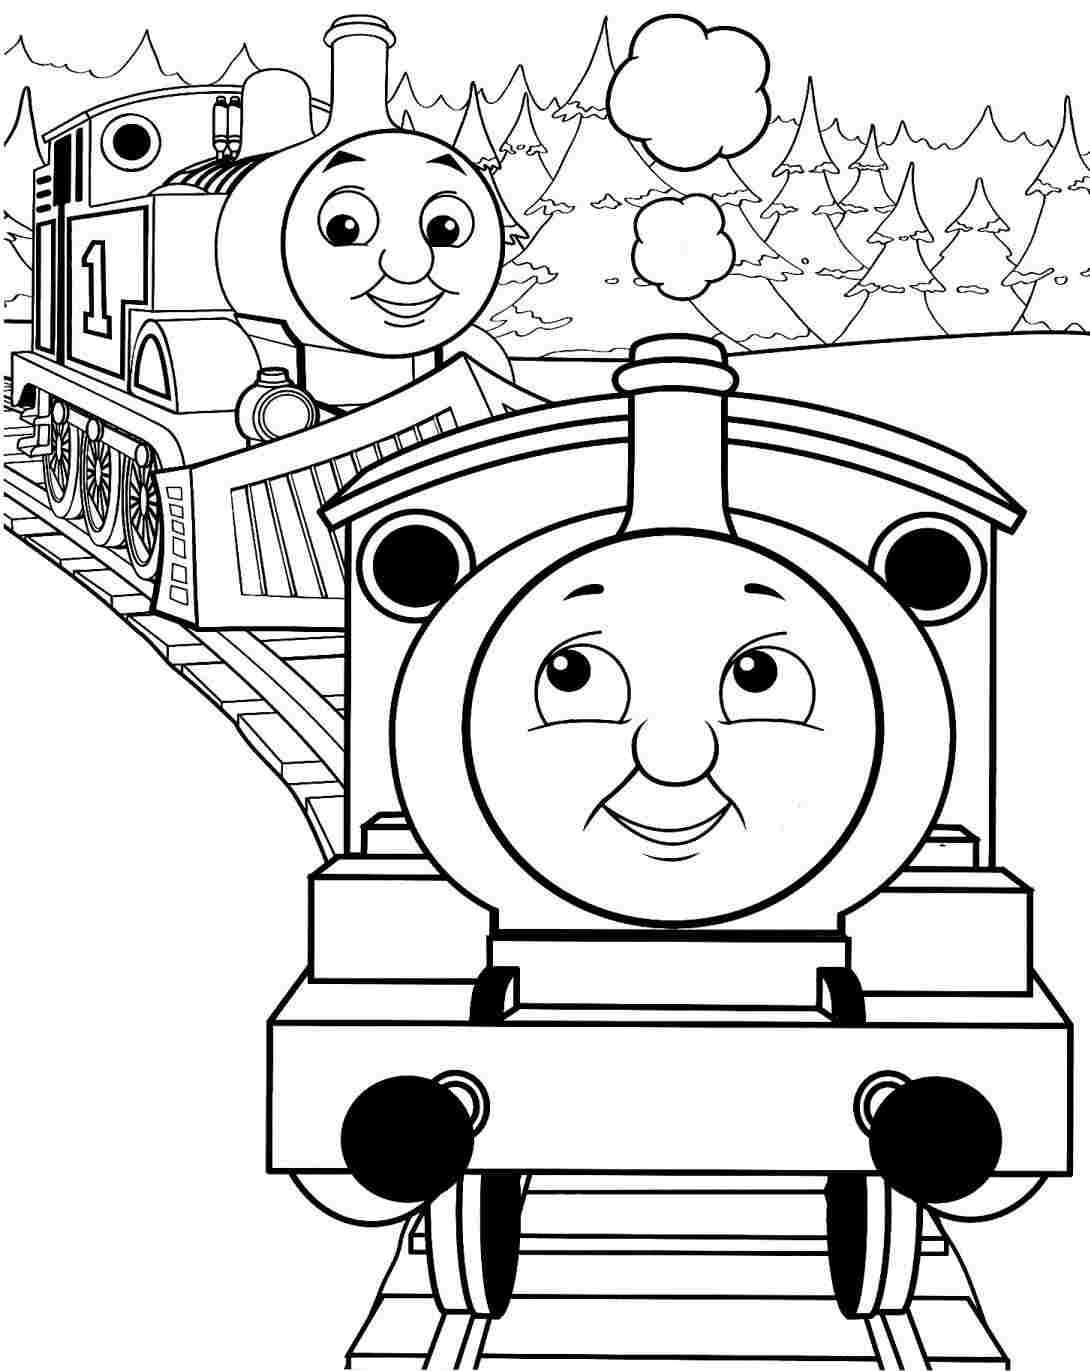 Simple Thomas The Train Coloring Pages · Thomas The Train Coloring ...